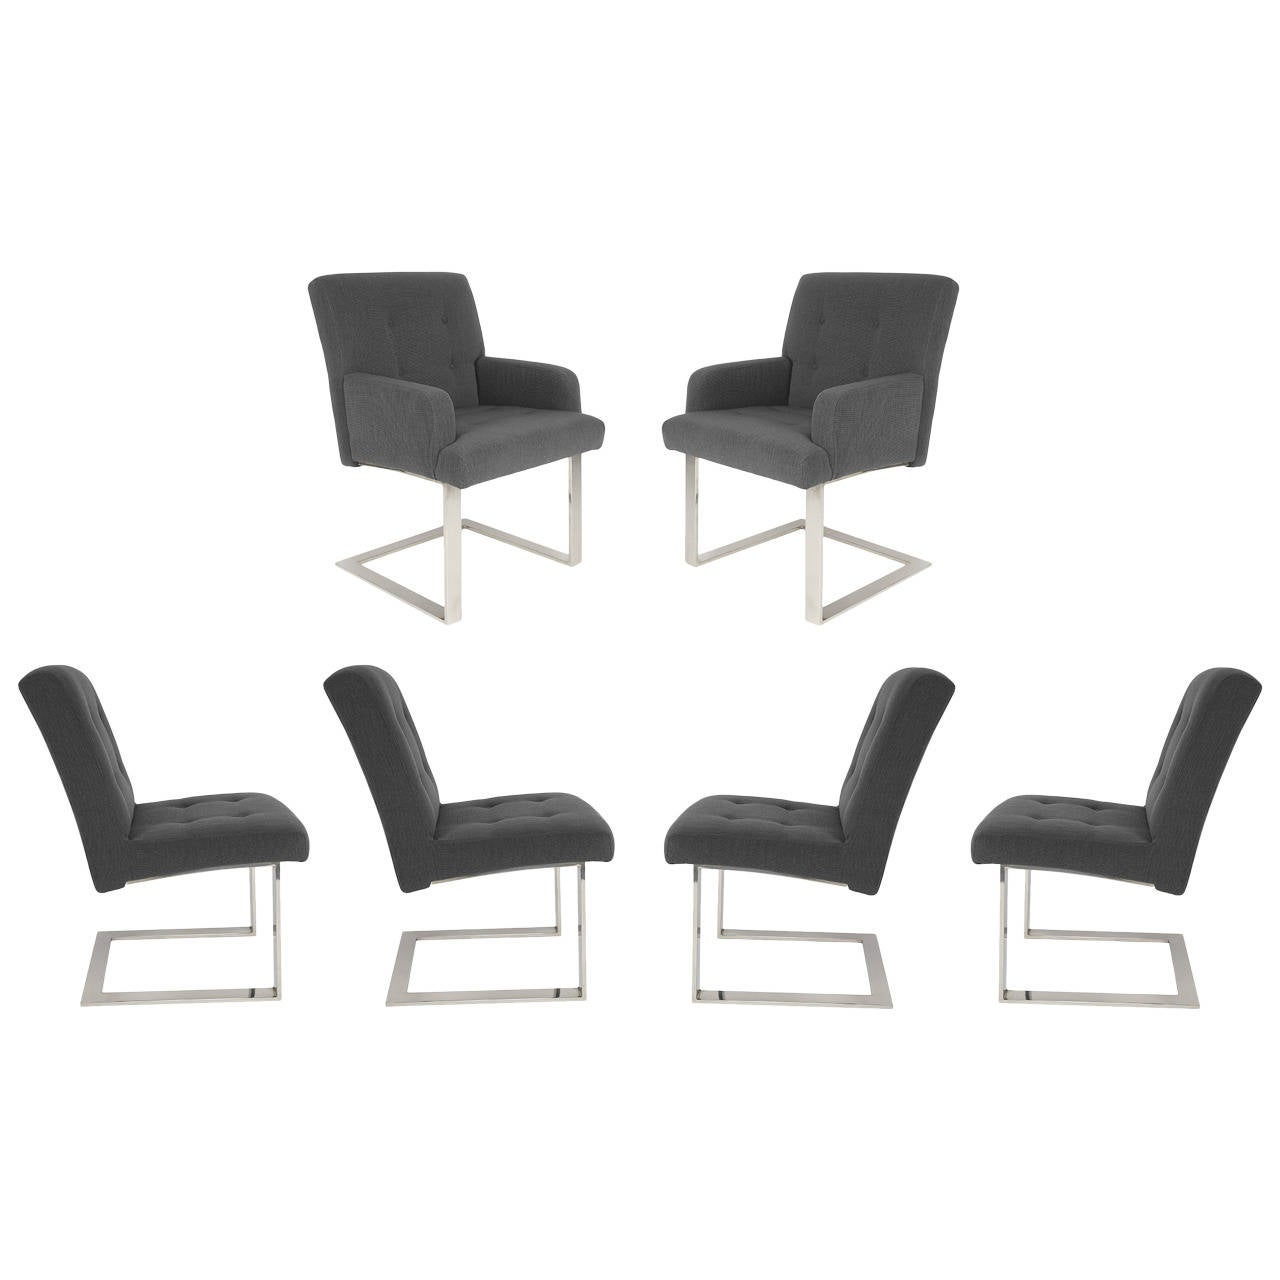 Set of Six 1970s Cantilevered Dining Chairs by Paul Evans for Directional For Sale